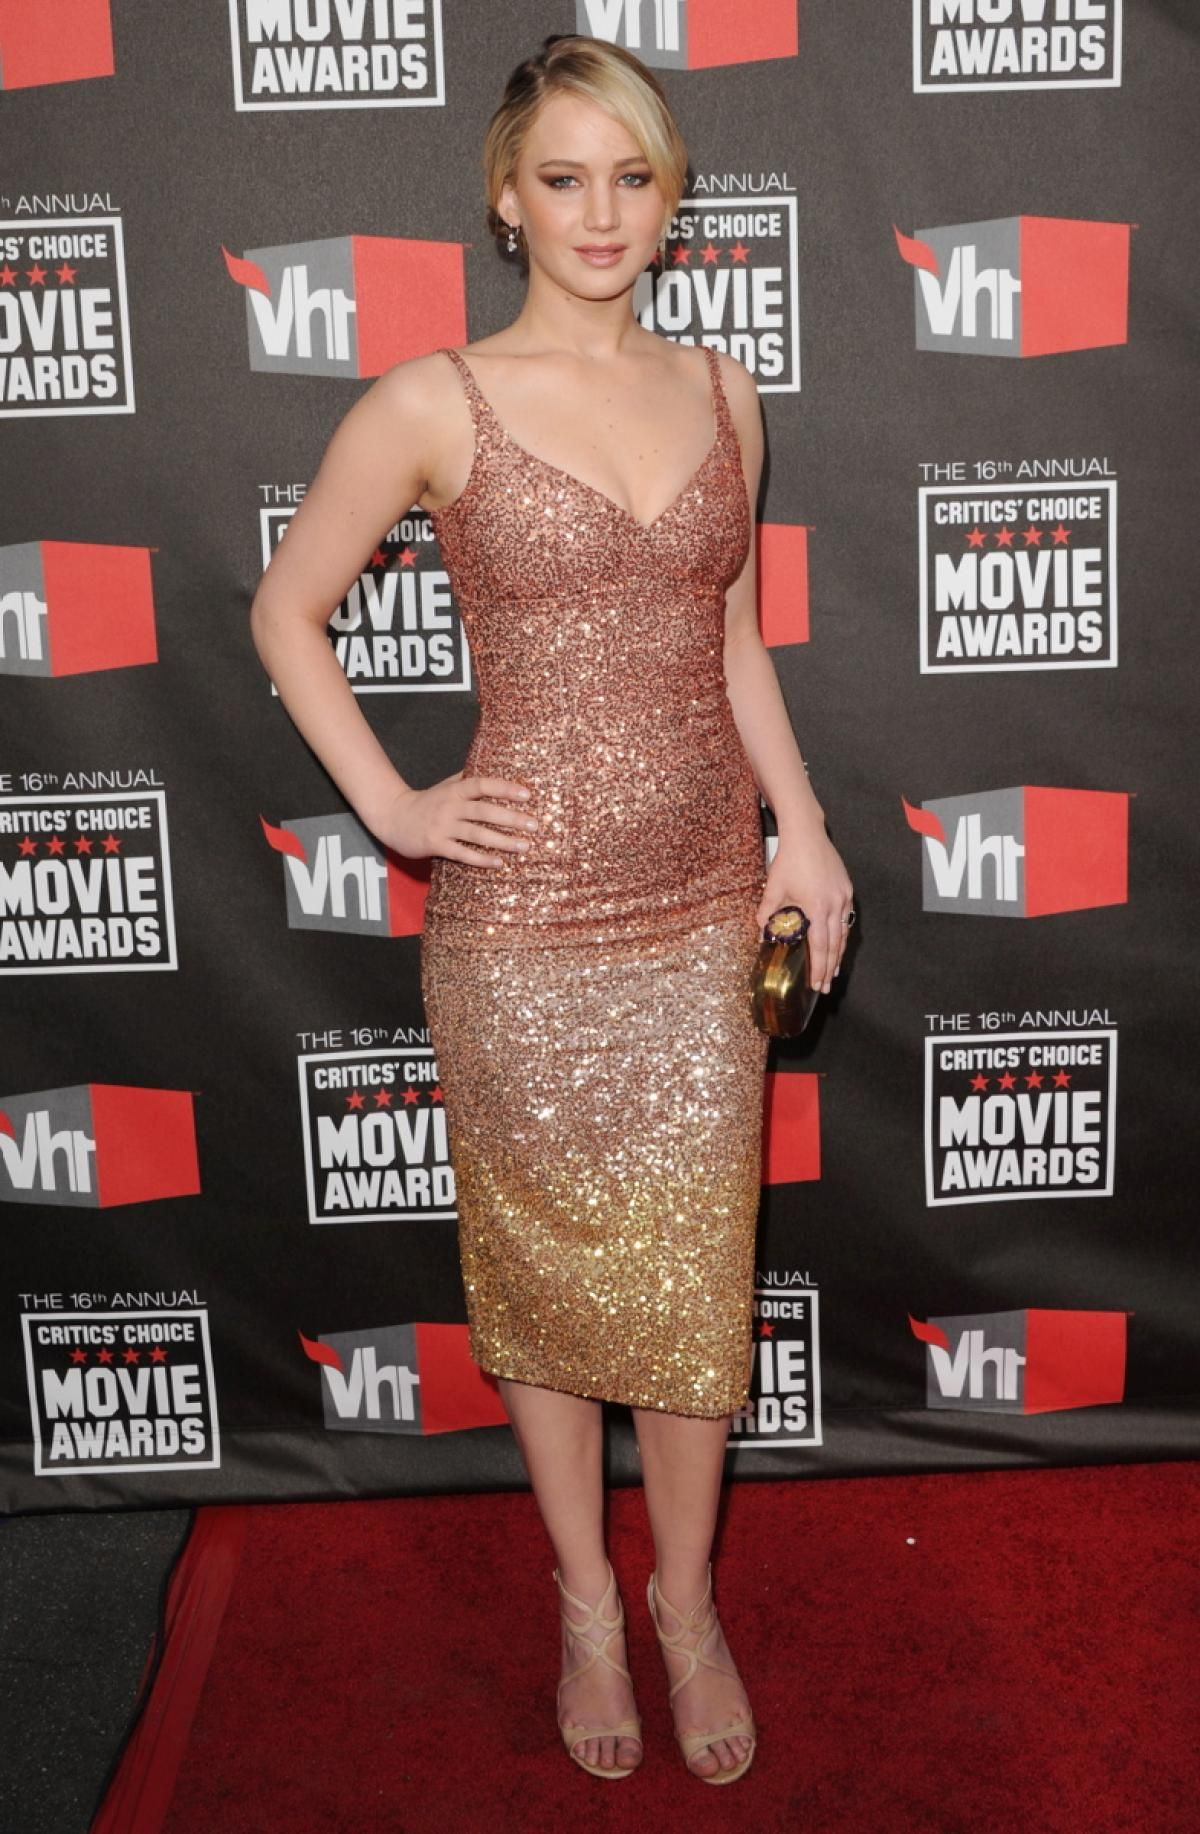 Jennifer Lawrence solidified her status as Hollywood golden girl when she arrived at the 2011 Critics' Choice Movie Awards wearing a stunning ombre L'Wren Scott dress that fit her like a glove.